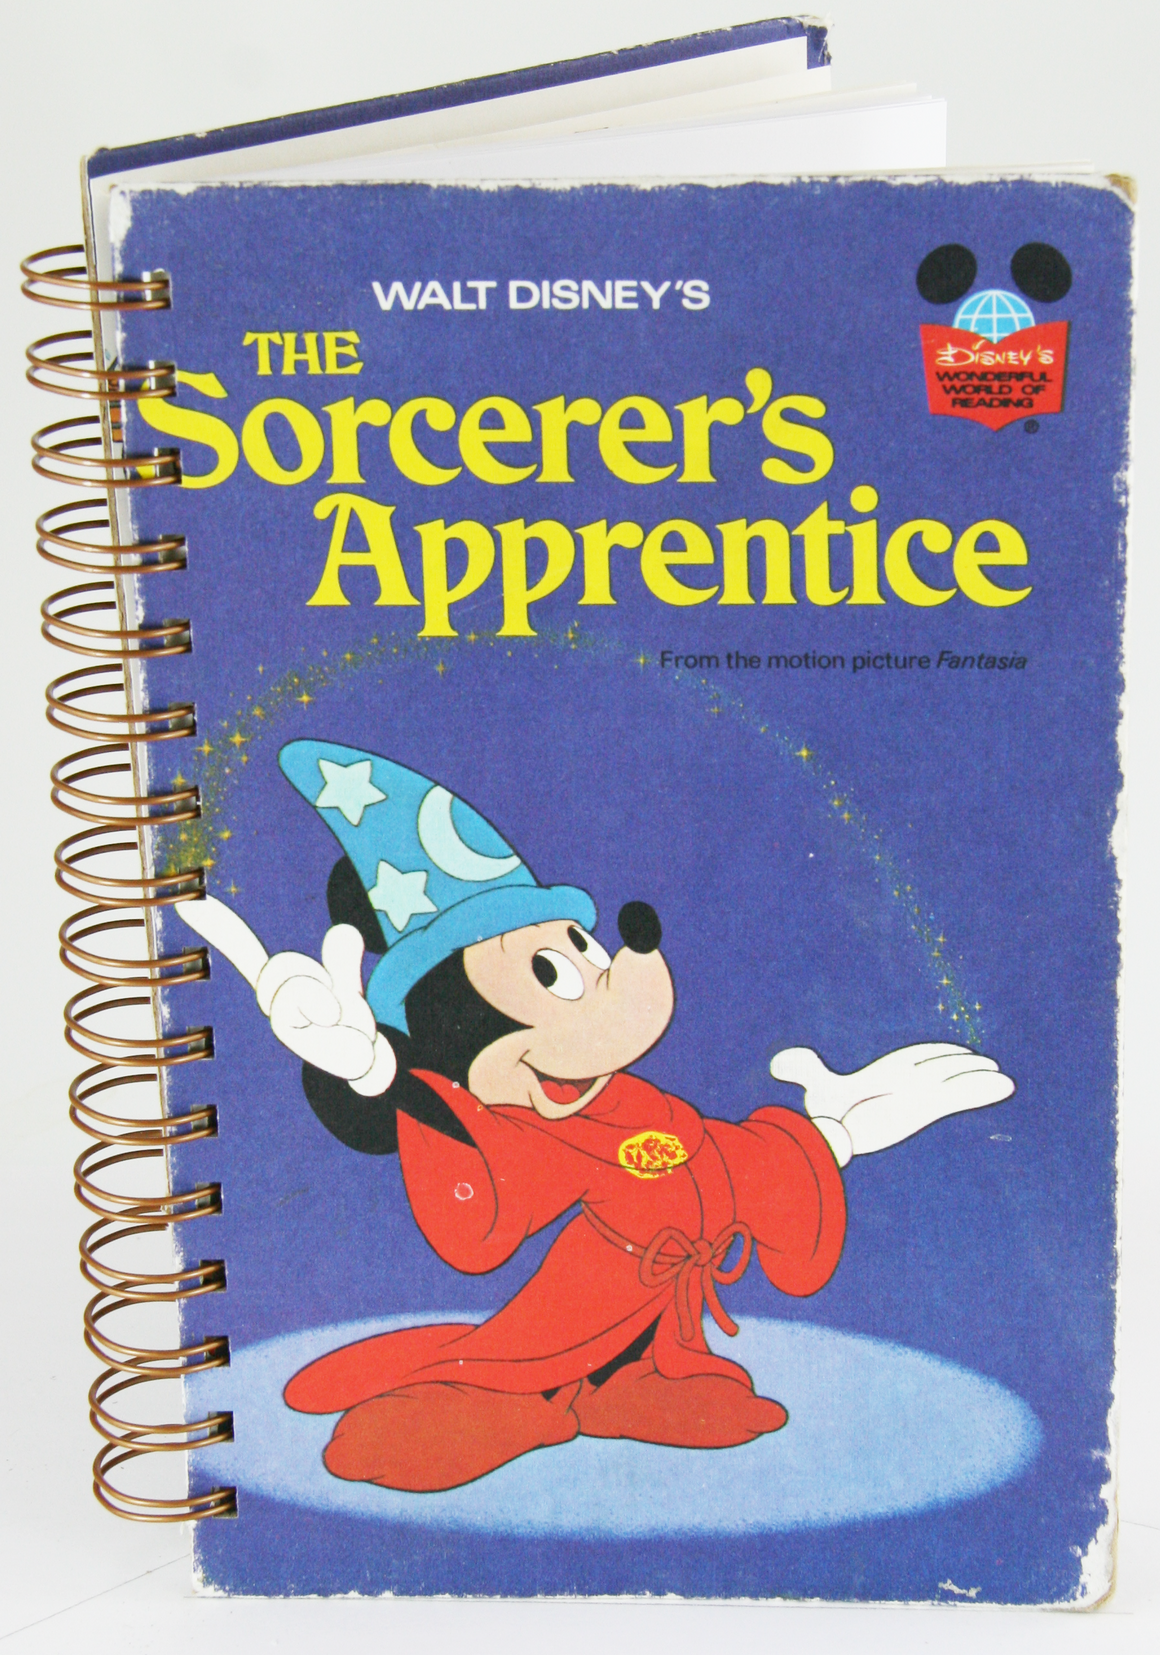 The Sorcerer's Apprentice-Red Barn Collections